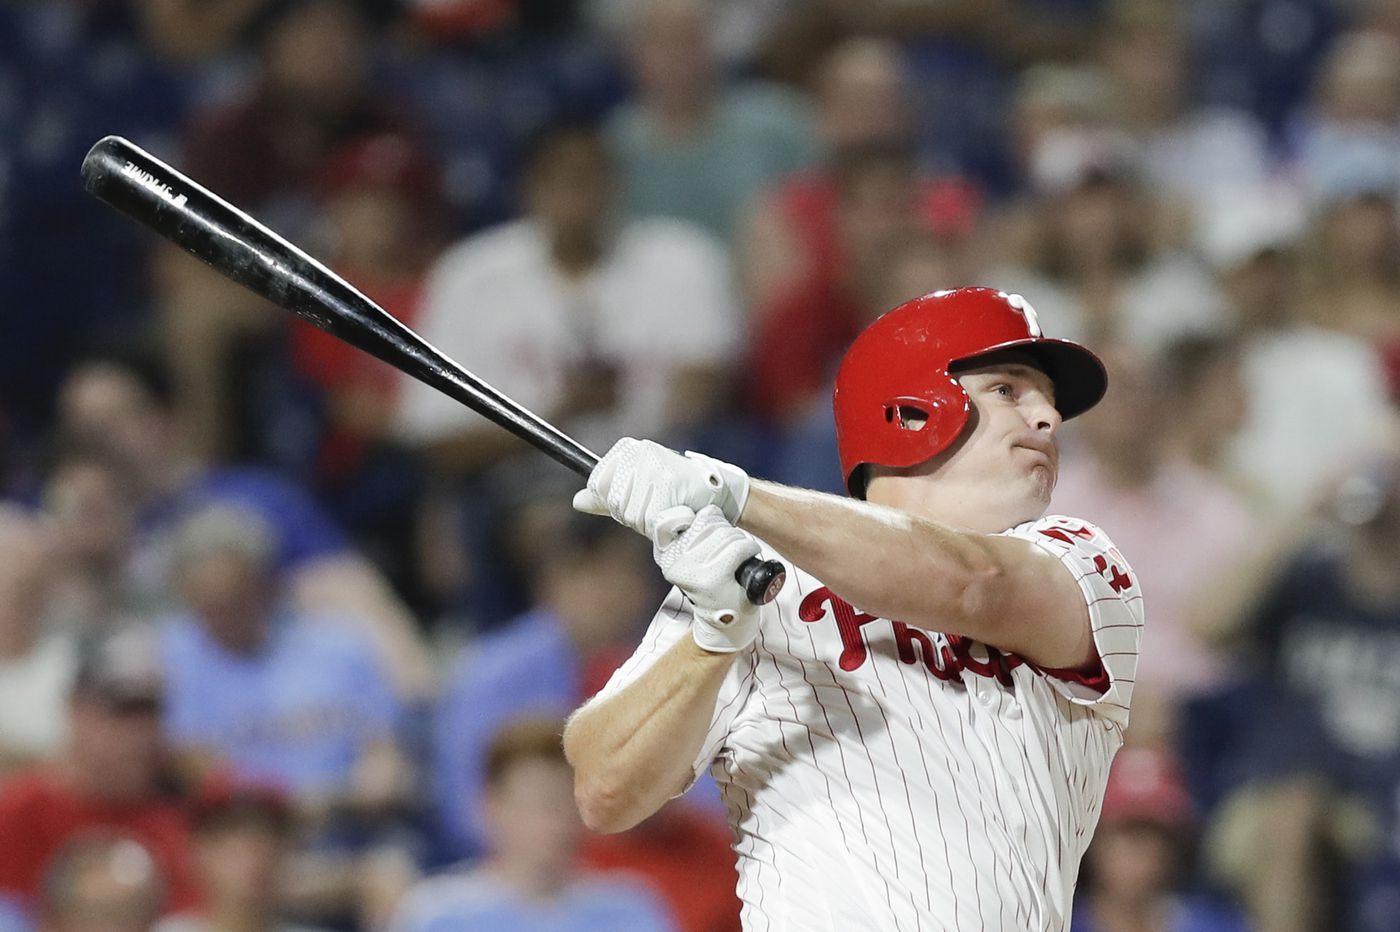 Sizing up the Phillies' playoff chances at the All-Star break | Extra Innings